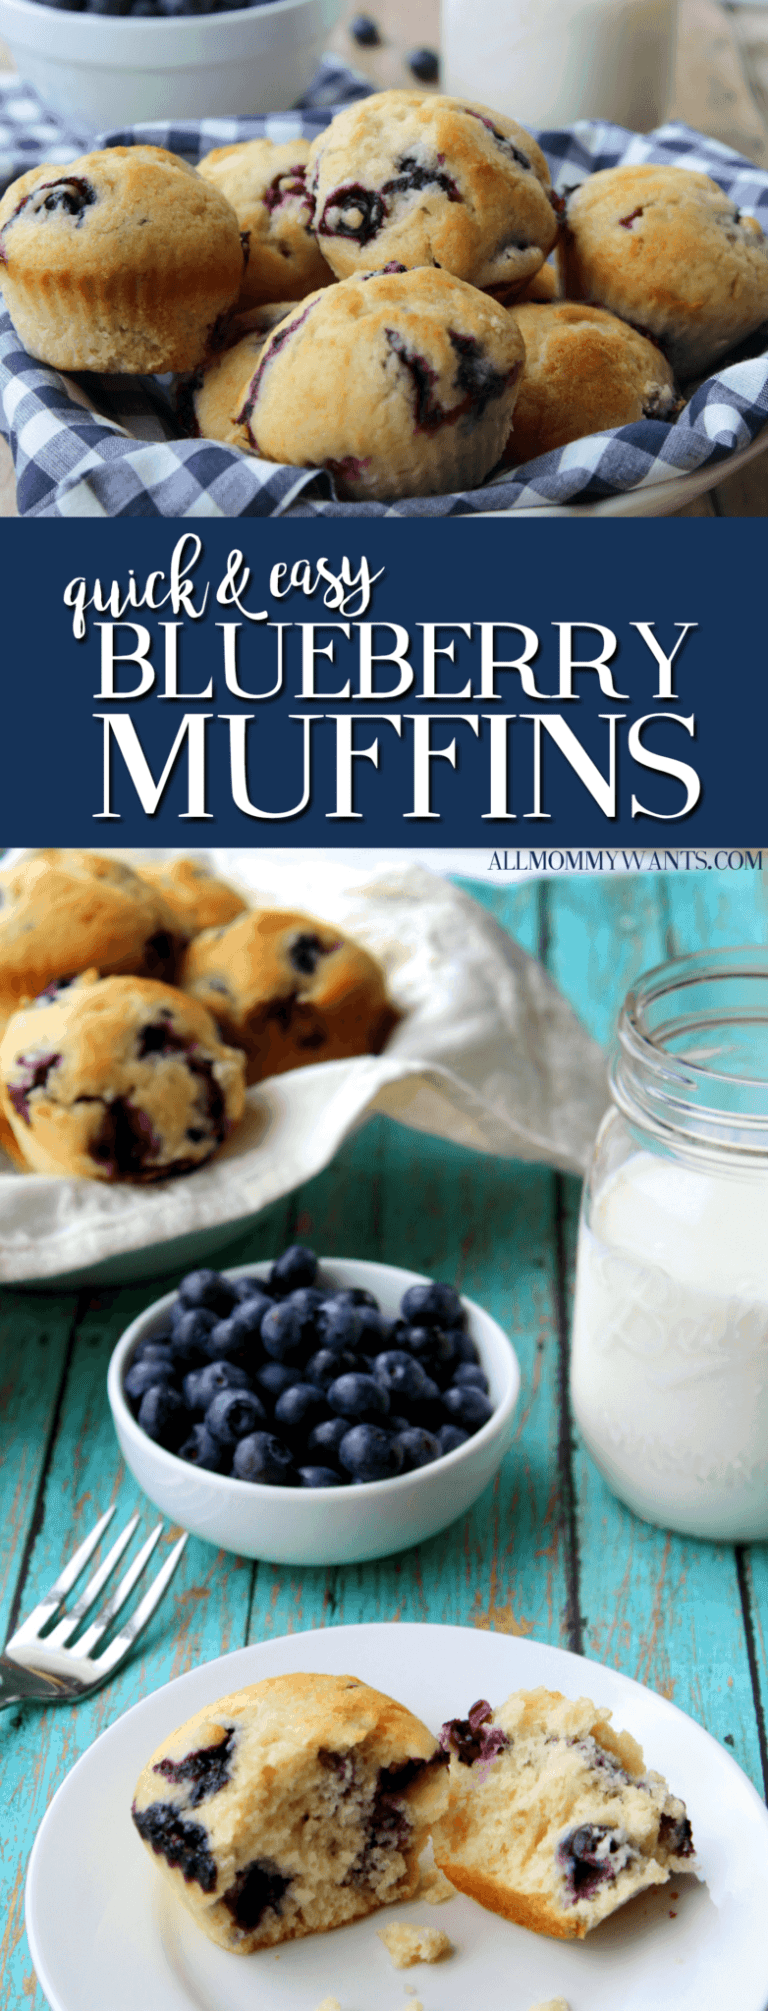 Recipe: Quick and Easy Blueberry Muffins images